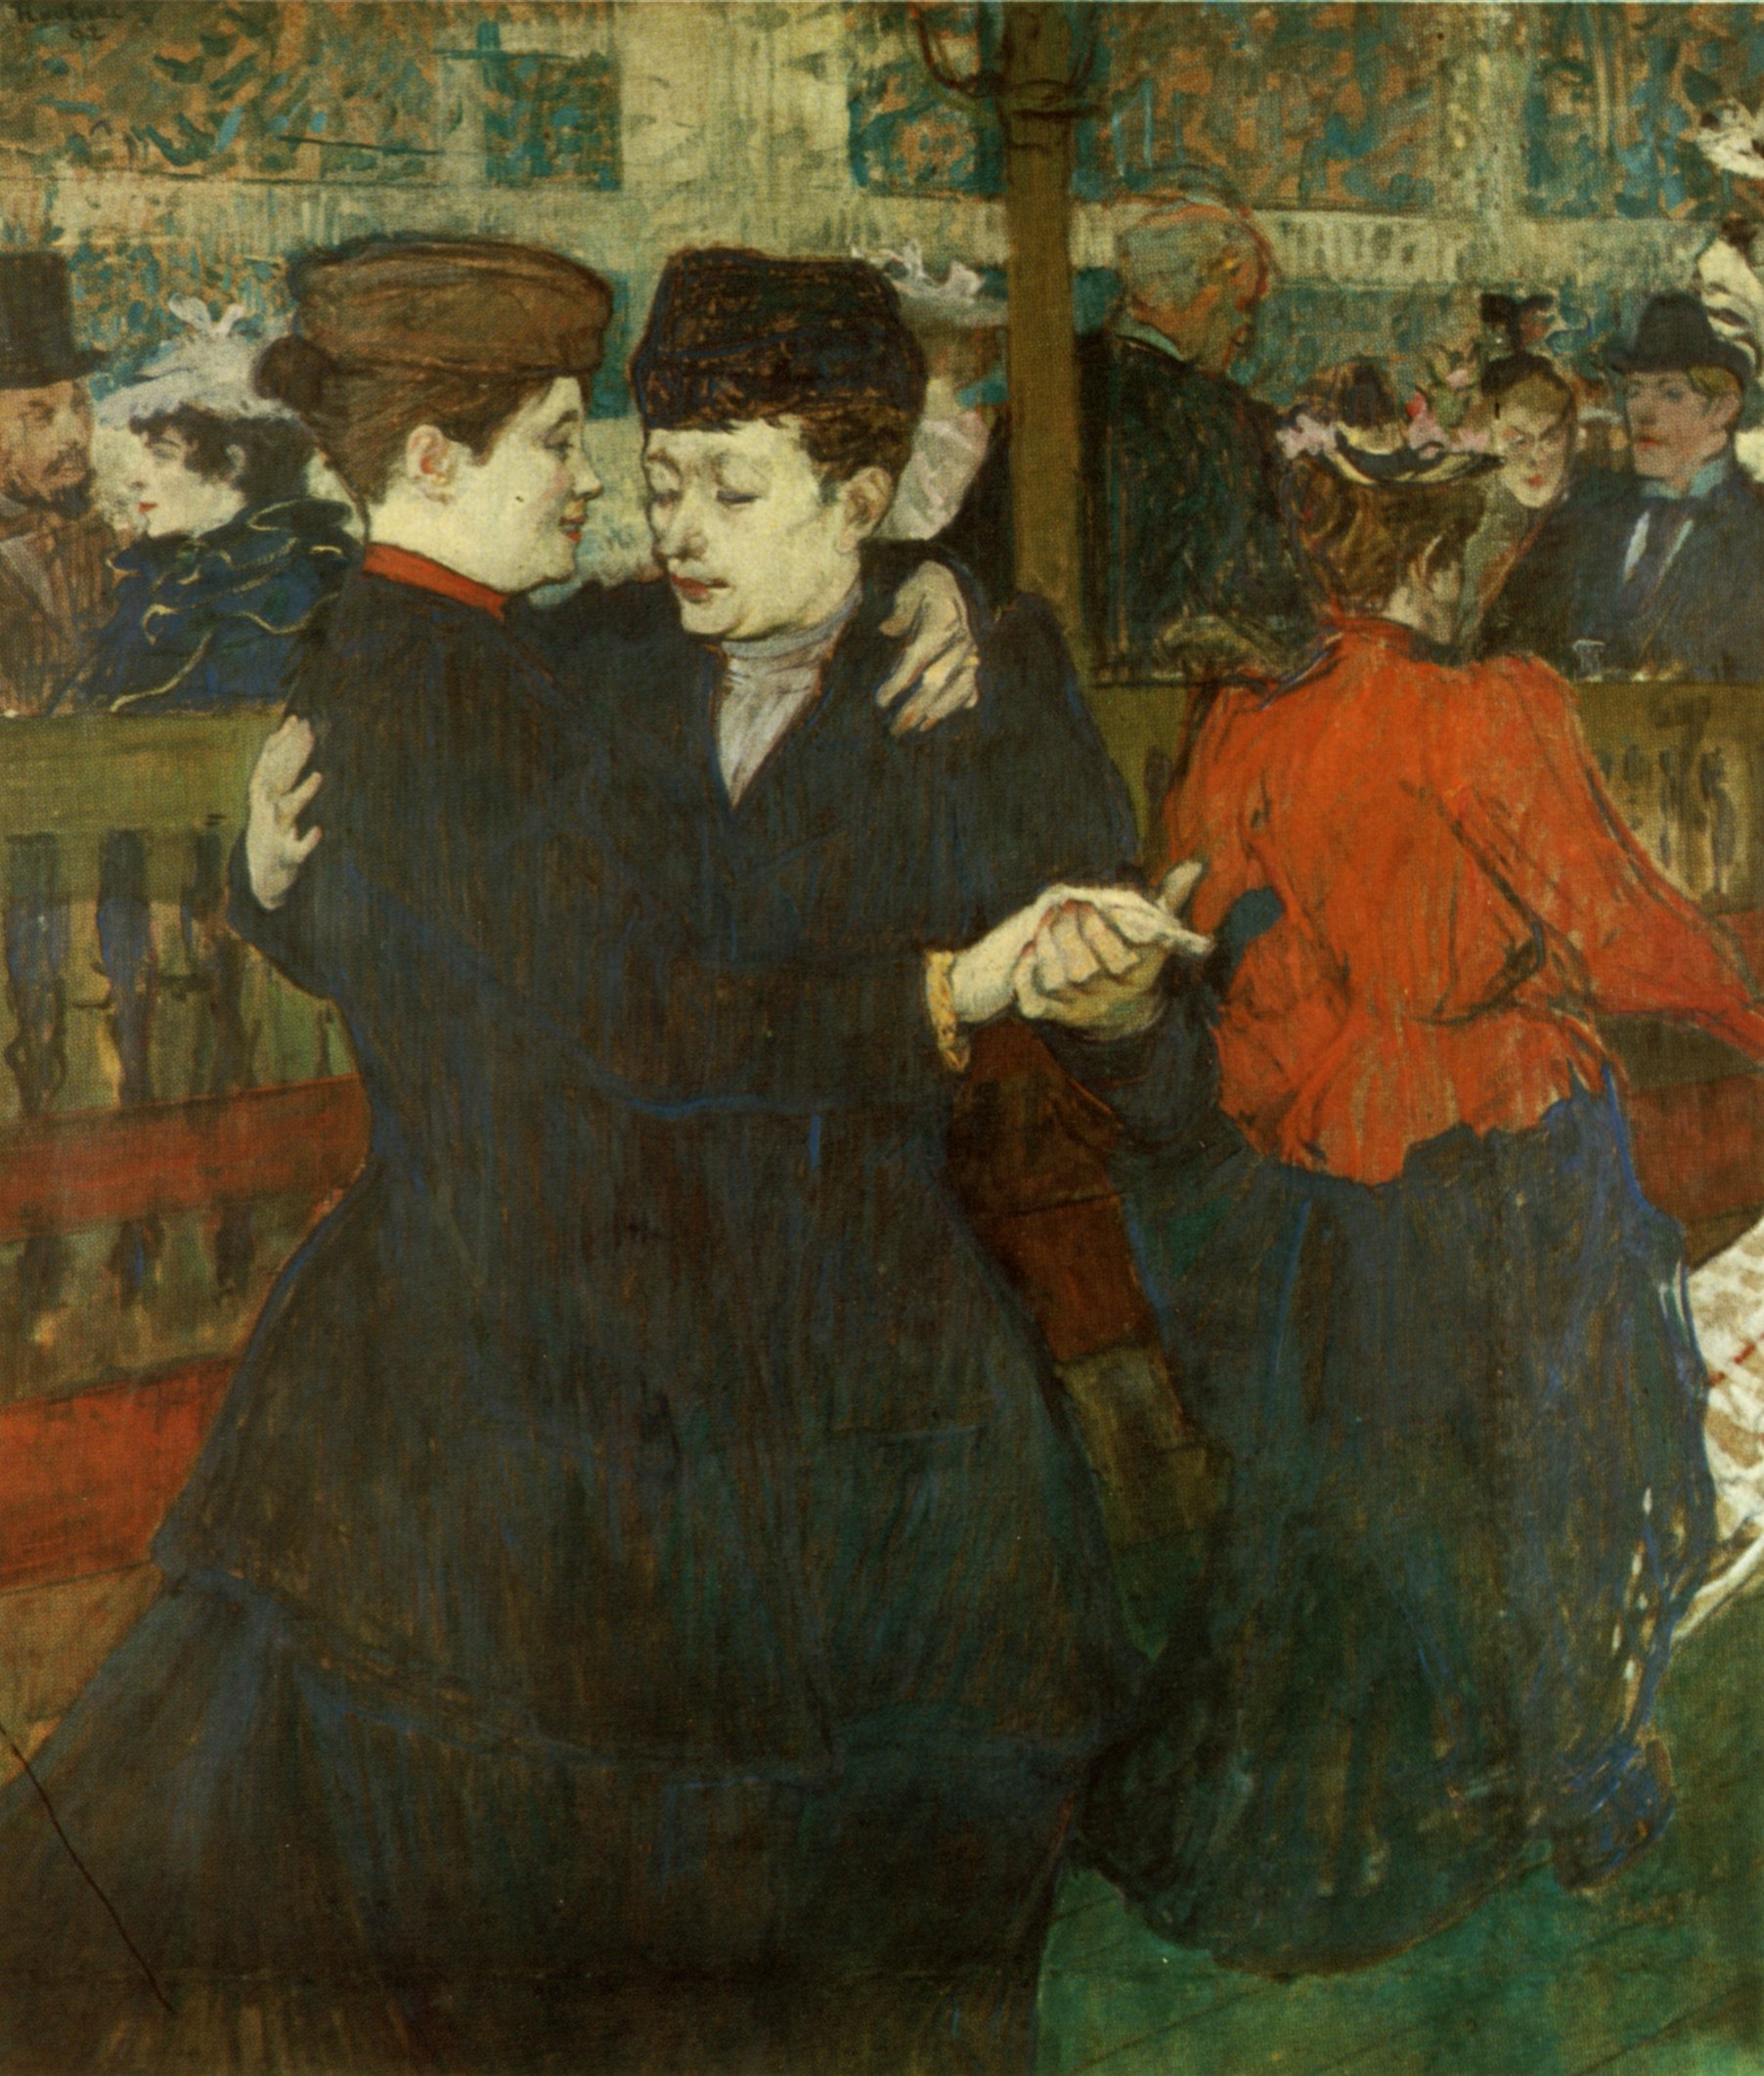 At the Moulin-Rouges, Two Women Waltzing   By Henri de Toulouse-Lautrec.  Works from the National Gallery in Prague . Photo by: Jan Sedlák, Henri de Toulouse-Lautrec, Odeon, Praha 1985.  Public Domain .